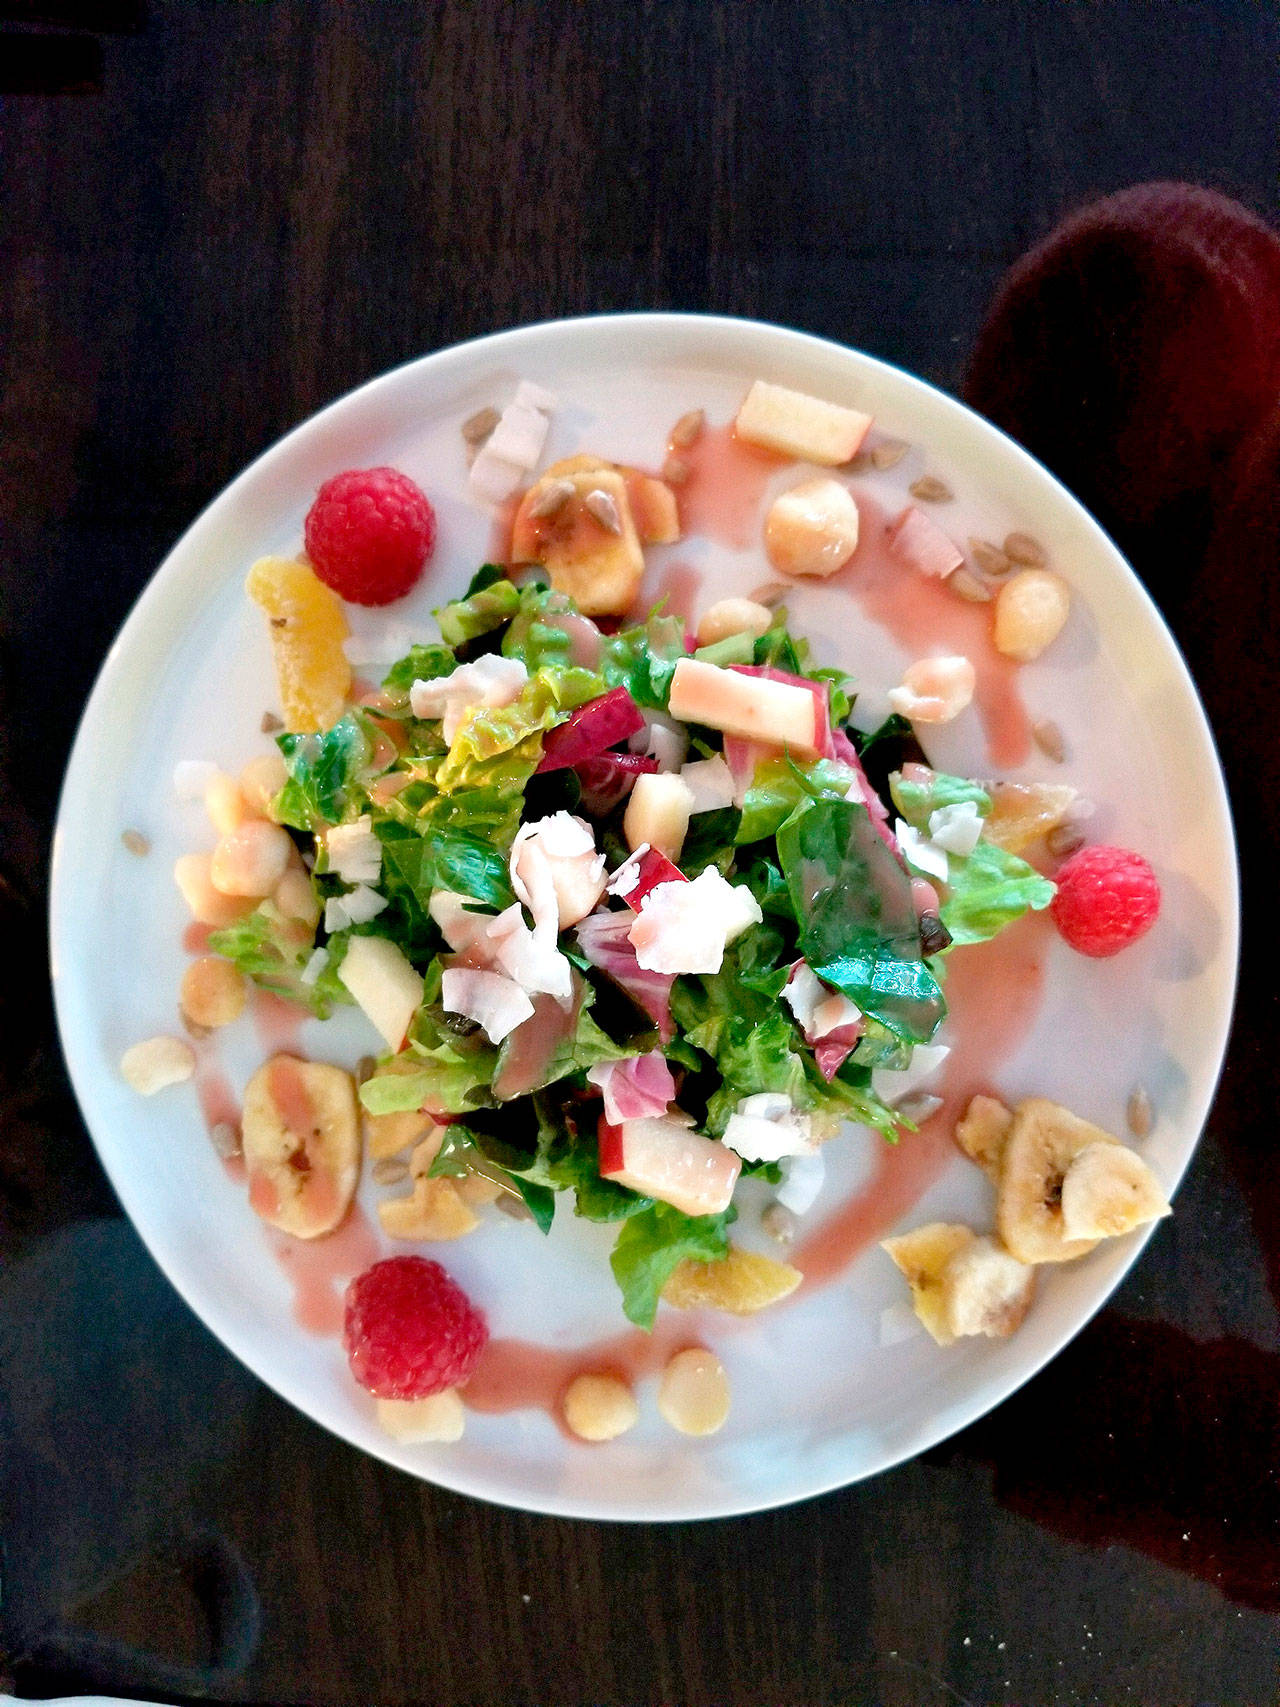 """The """"Dreaming of Vacation"""" salad at Crow Island Farms is a plate of mixed greens topped with a summery assortment of banana chips, coconut shavings, dried kiwi, raspberries, apples, macadamia nuts and sunflower seeds, and dressed with a strawberry vinaigrette. (Pam Bruestle)"""